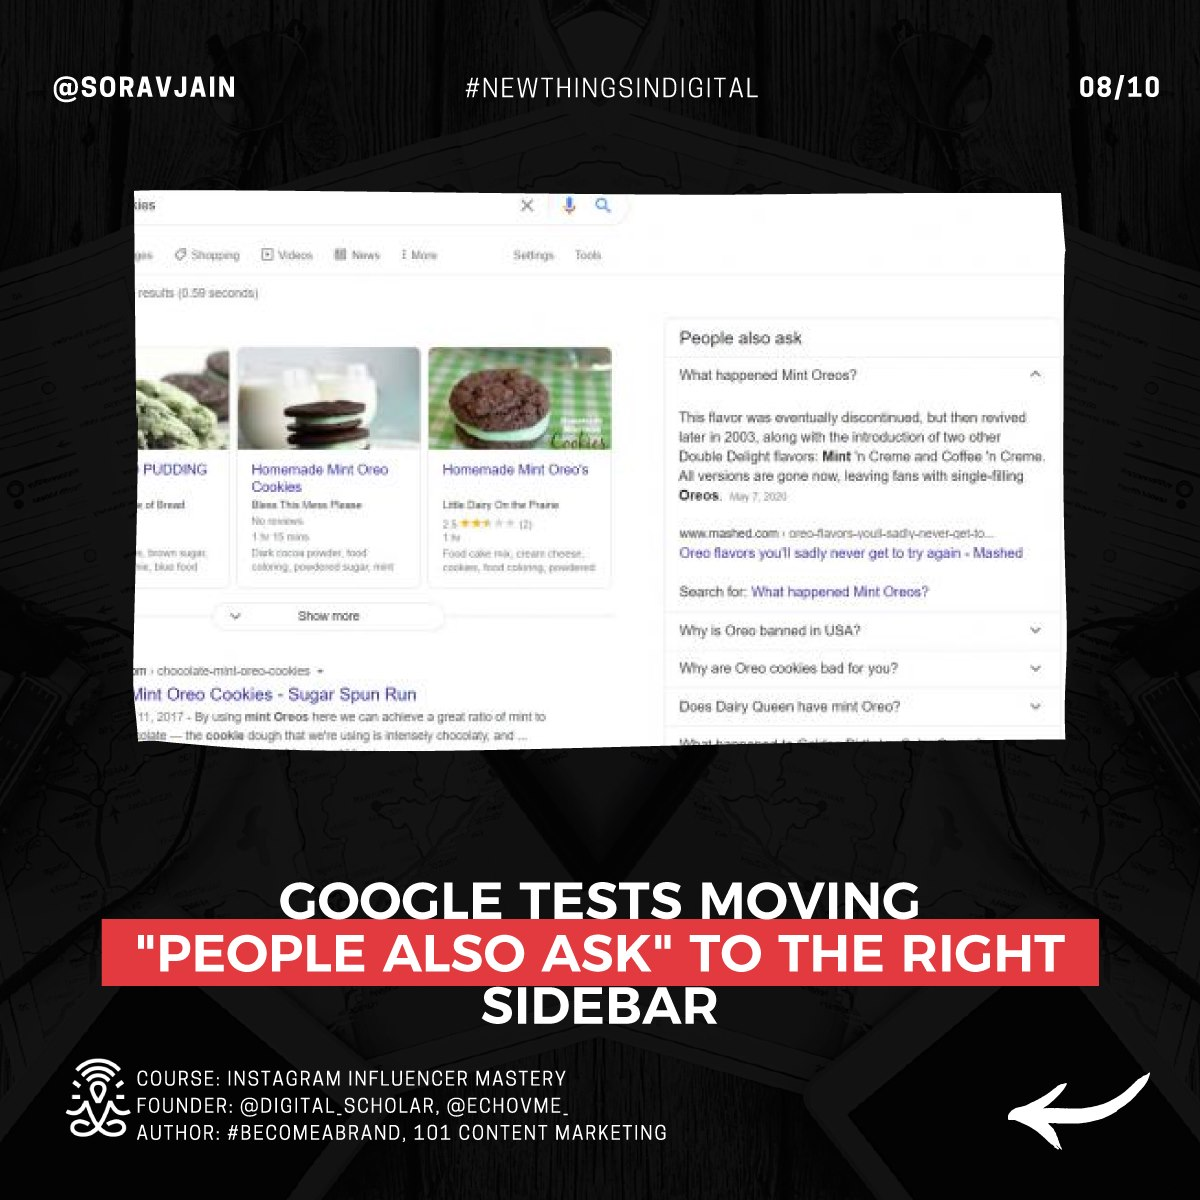 Google tests moving People Also Ask to the right sidebar